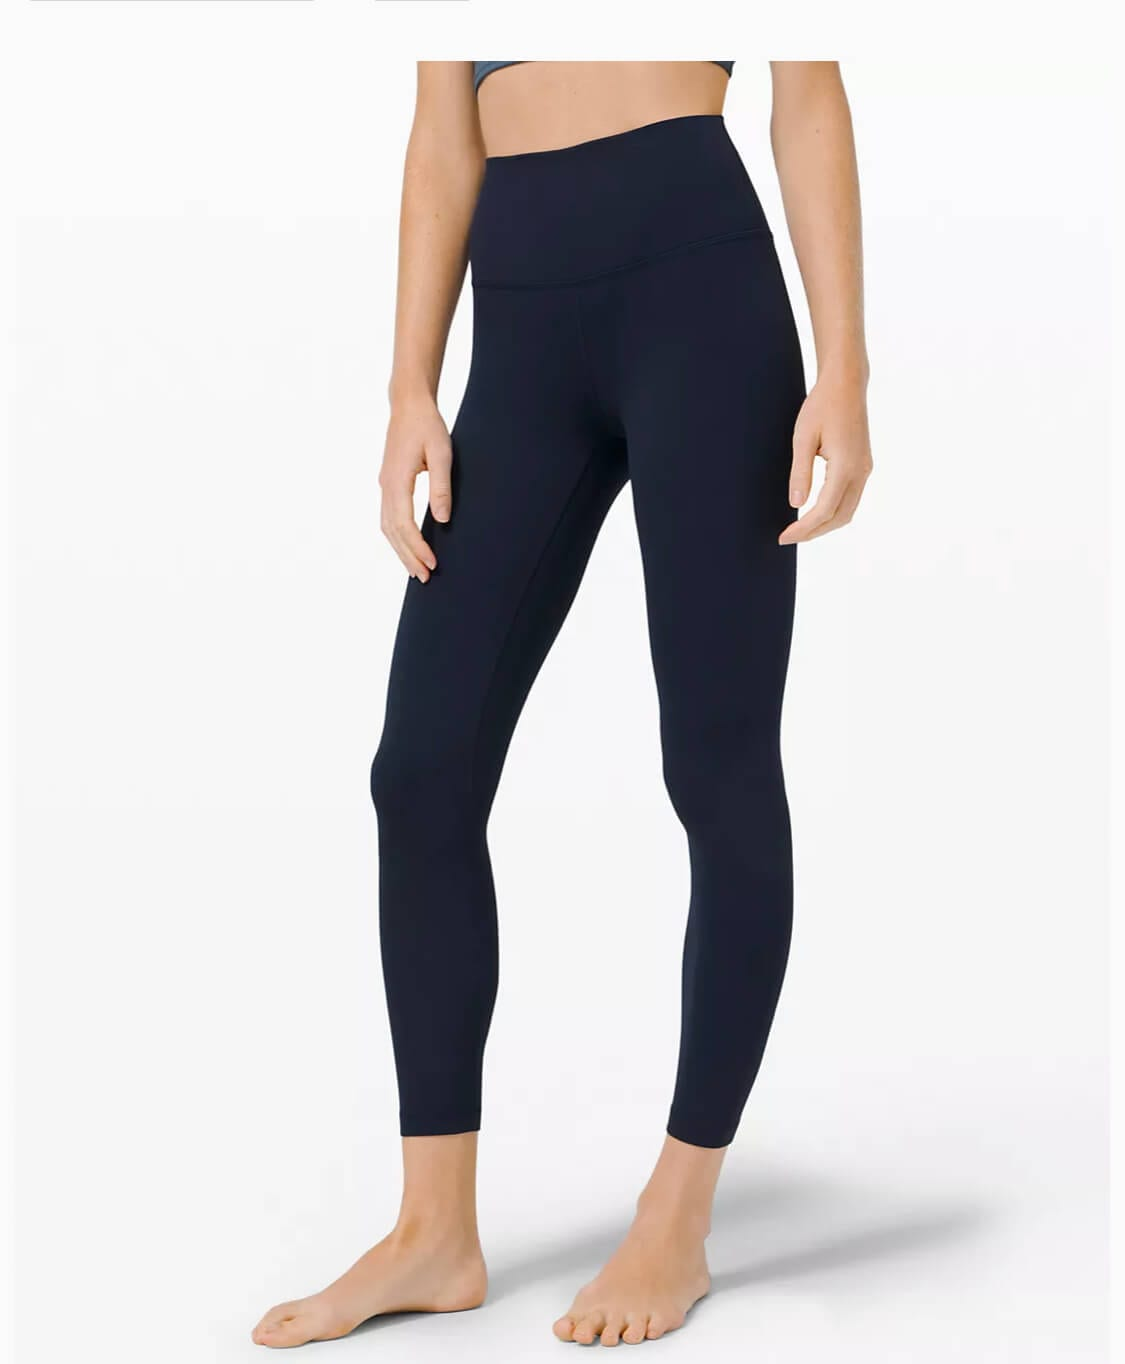 yoga pants for travel